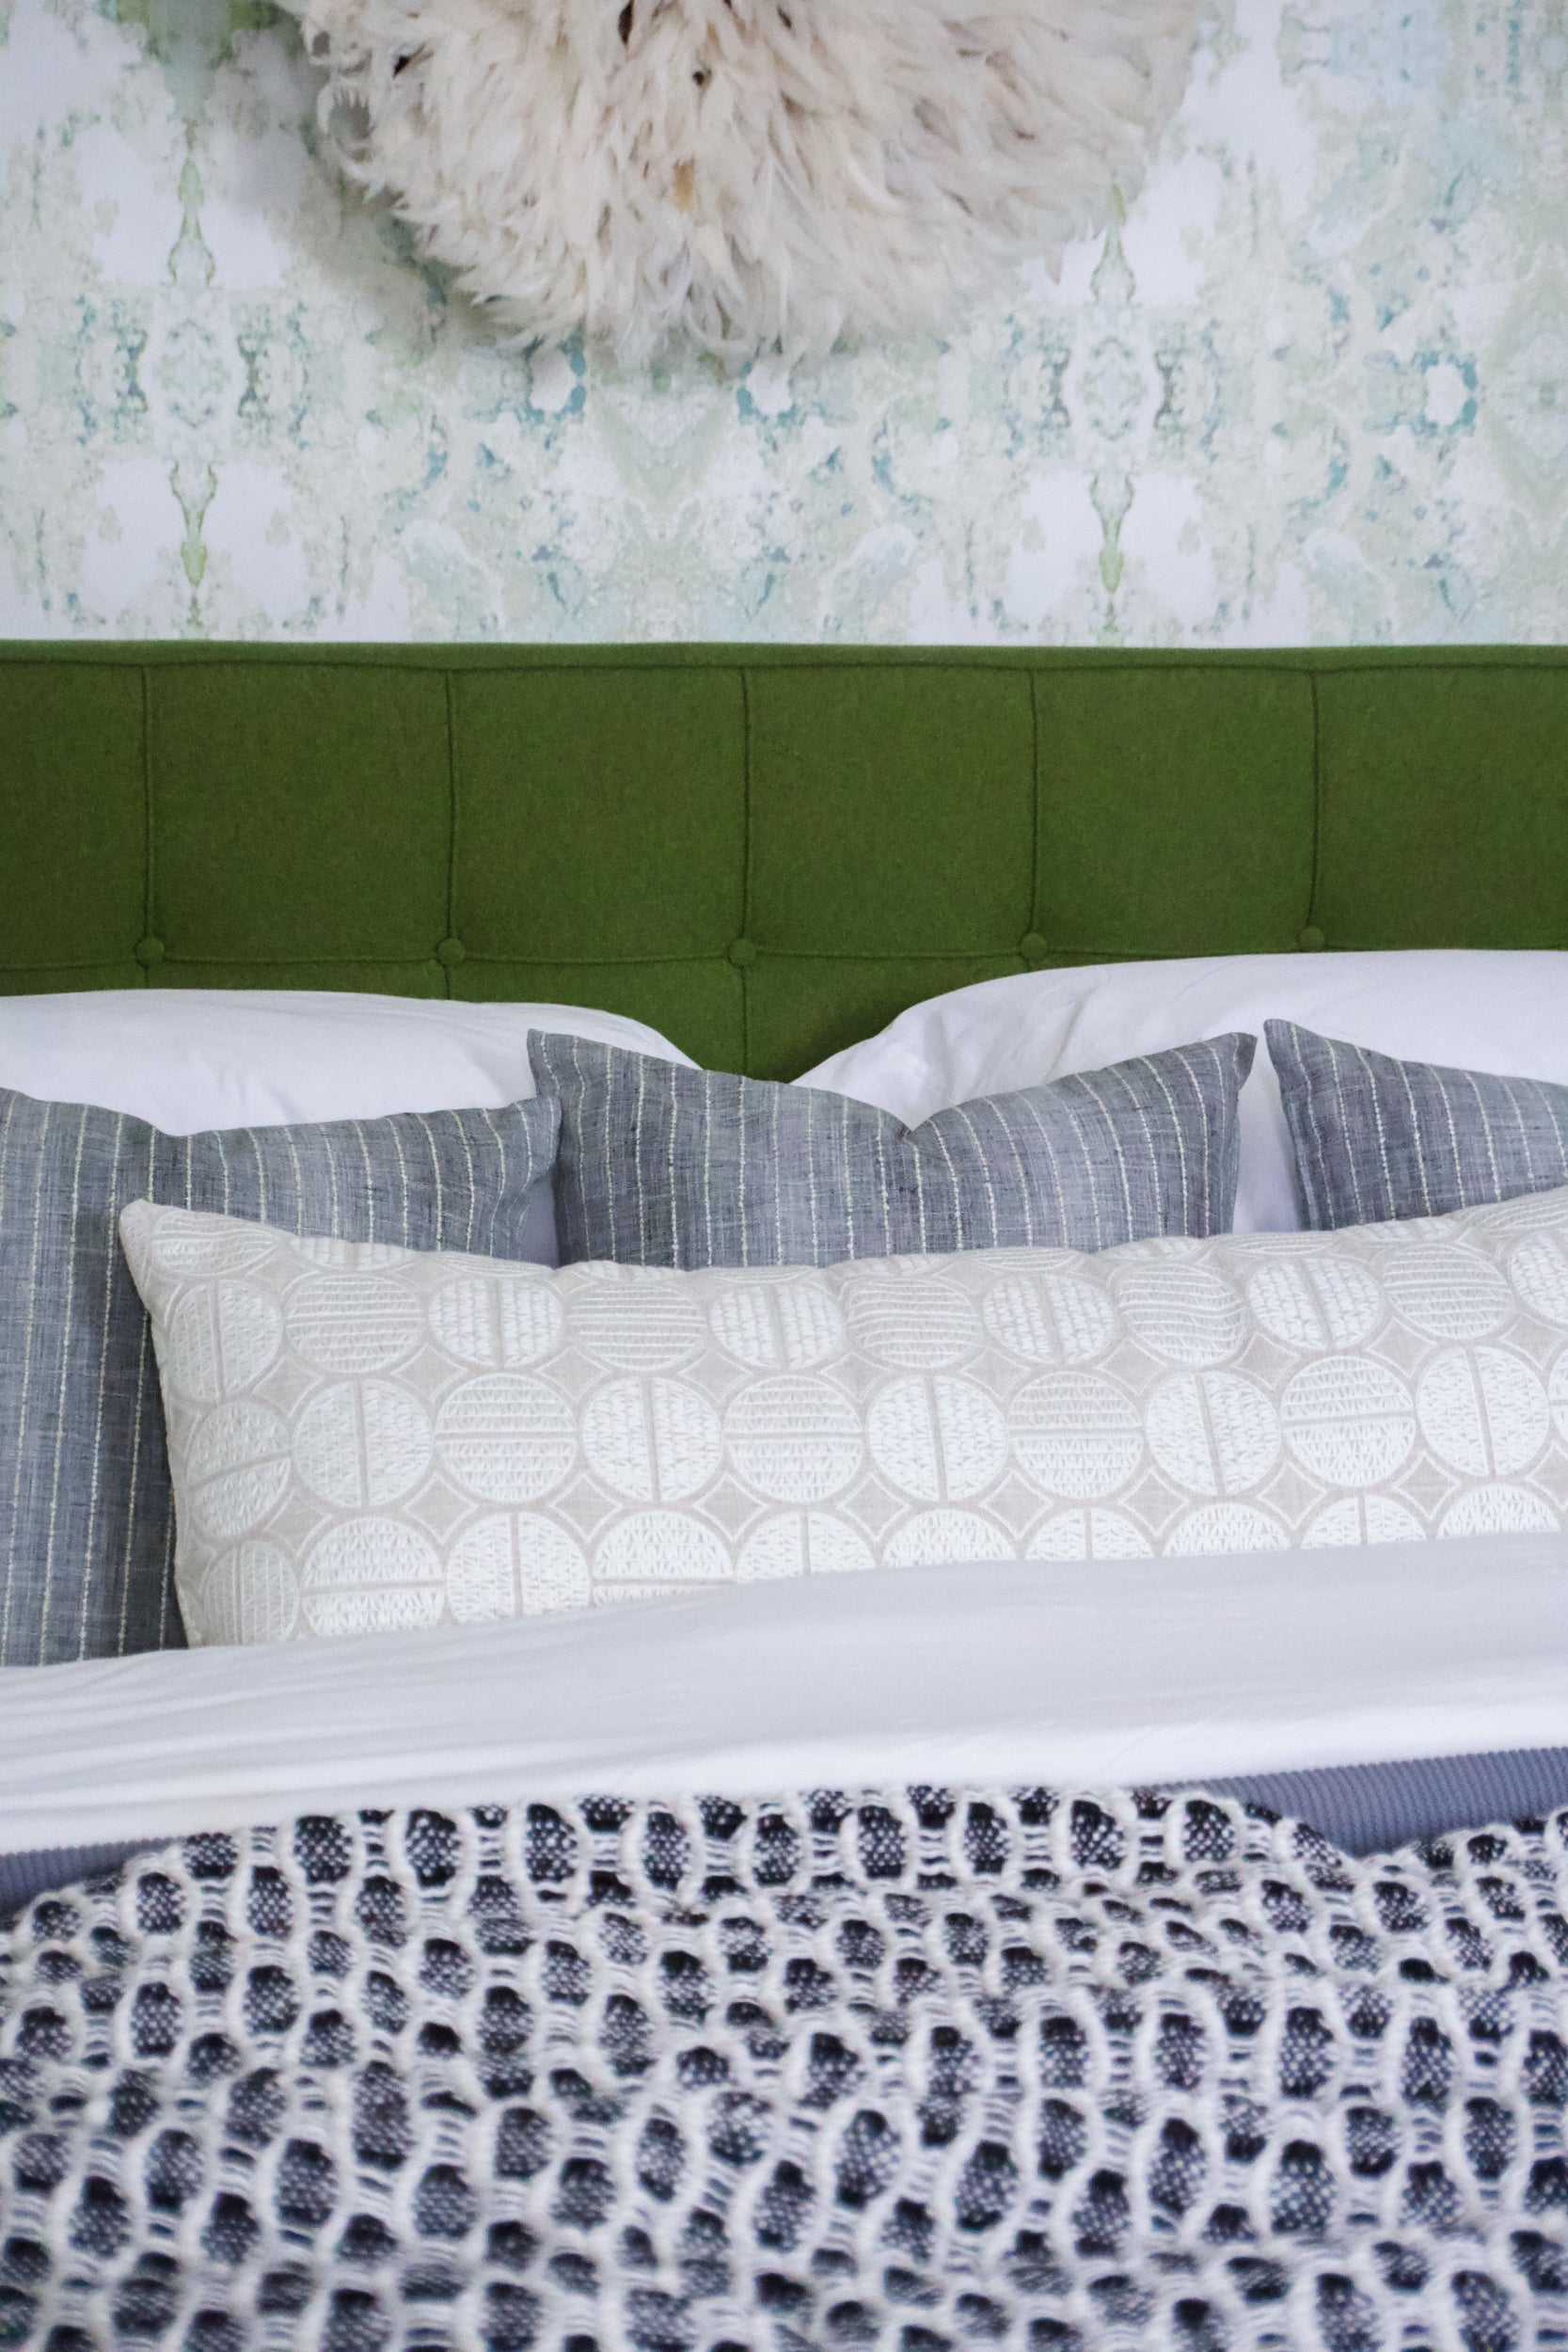 Cushions and pillows covered in textured bedding that is navy, white, grey and green